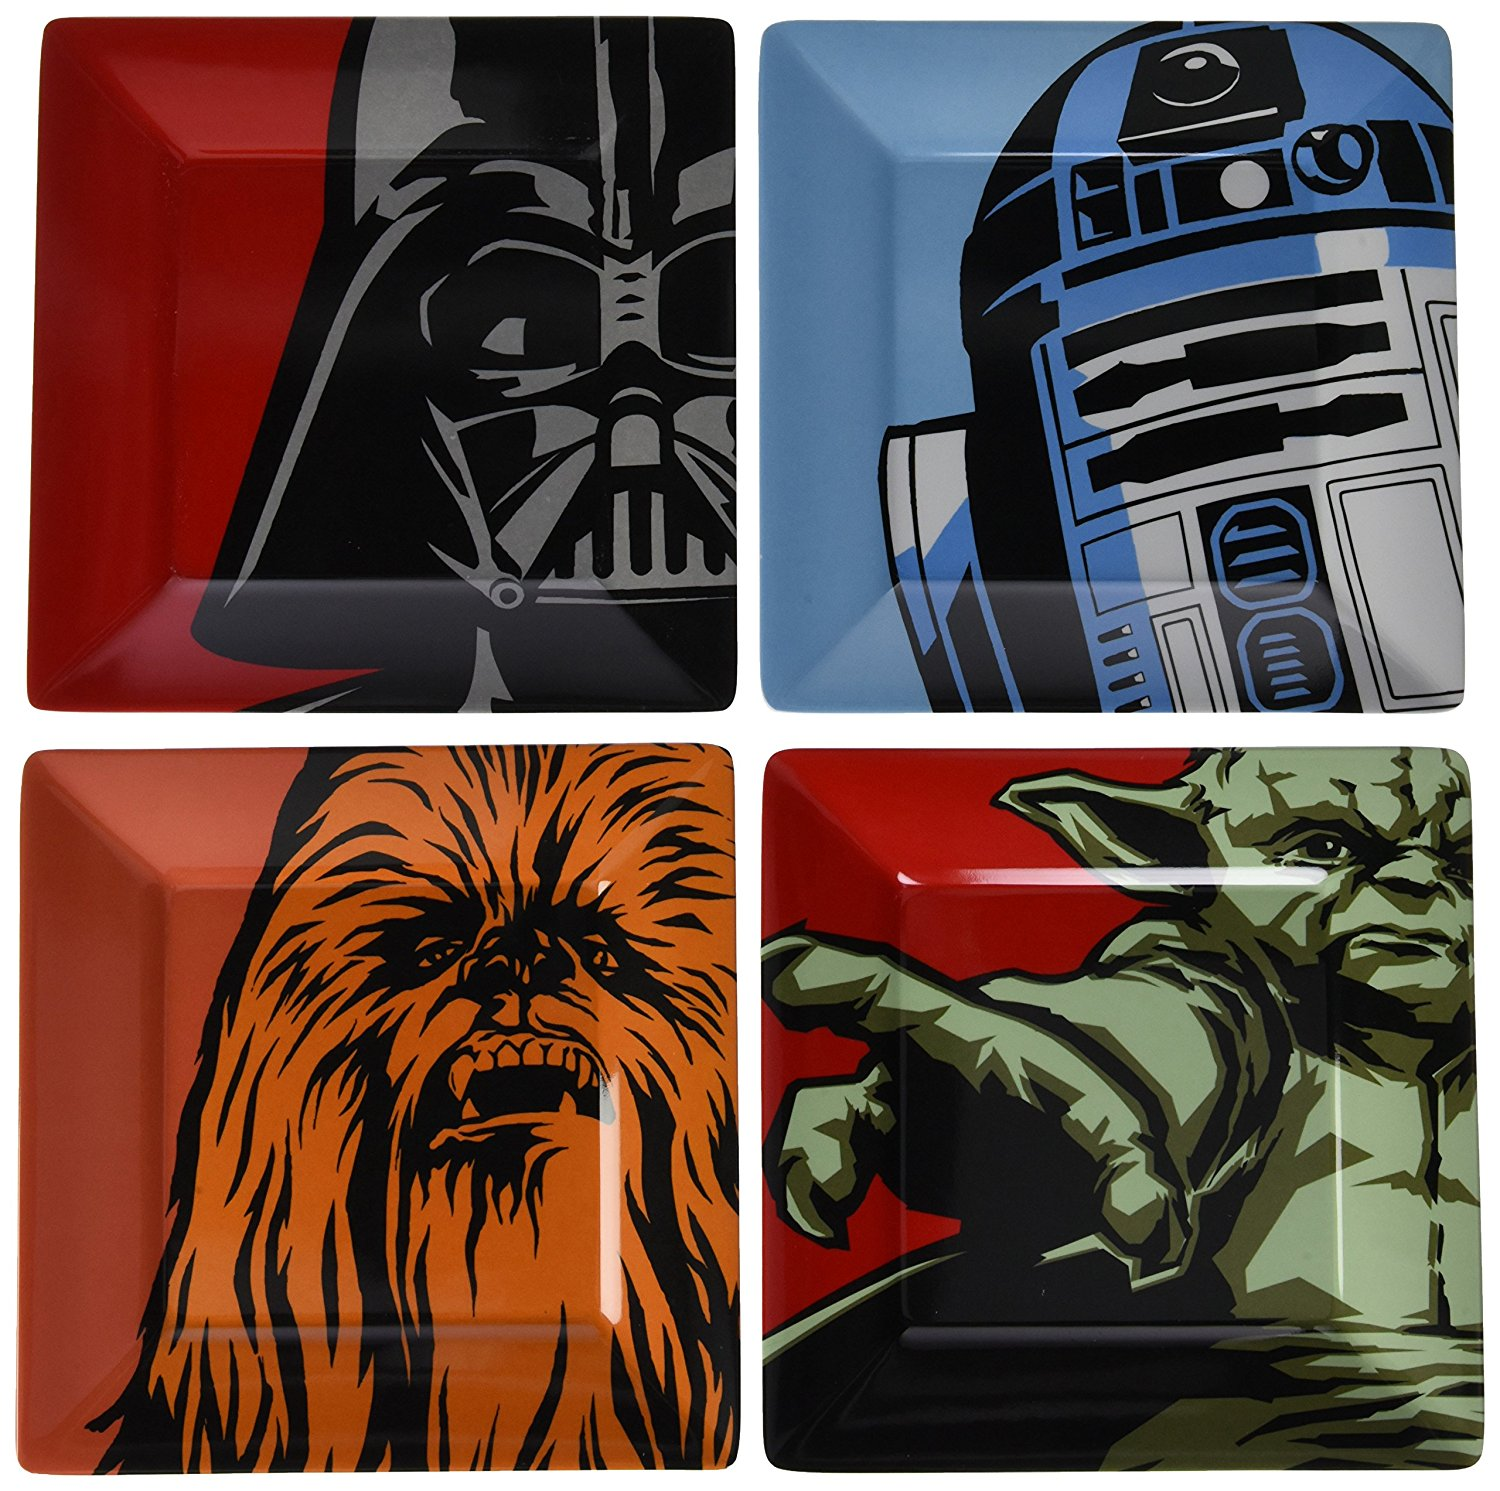 Star Wars Plate Set (Melamine)/Melamine 4PK Classic Characters, Official Star Wars Product By Underground Toys